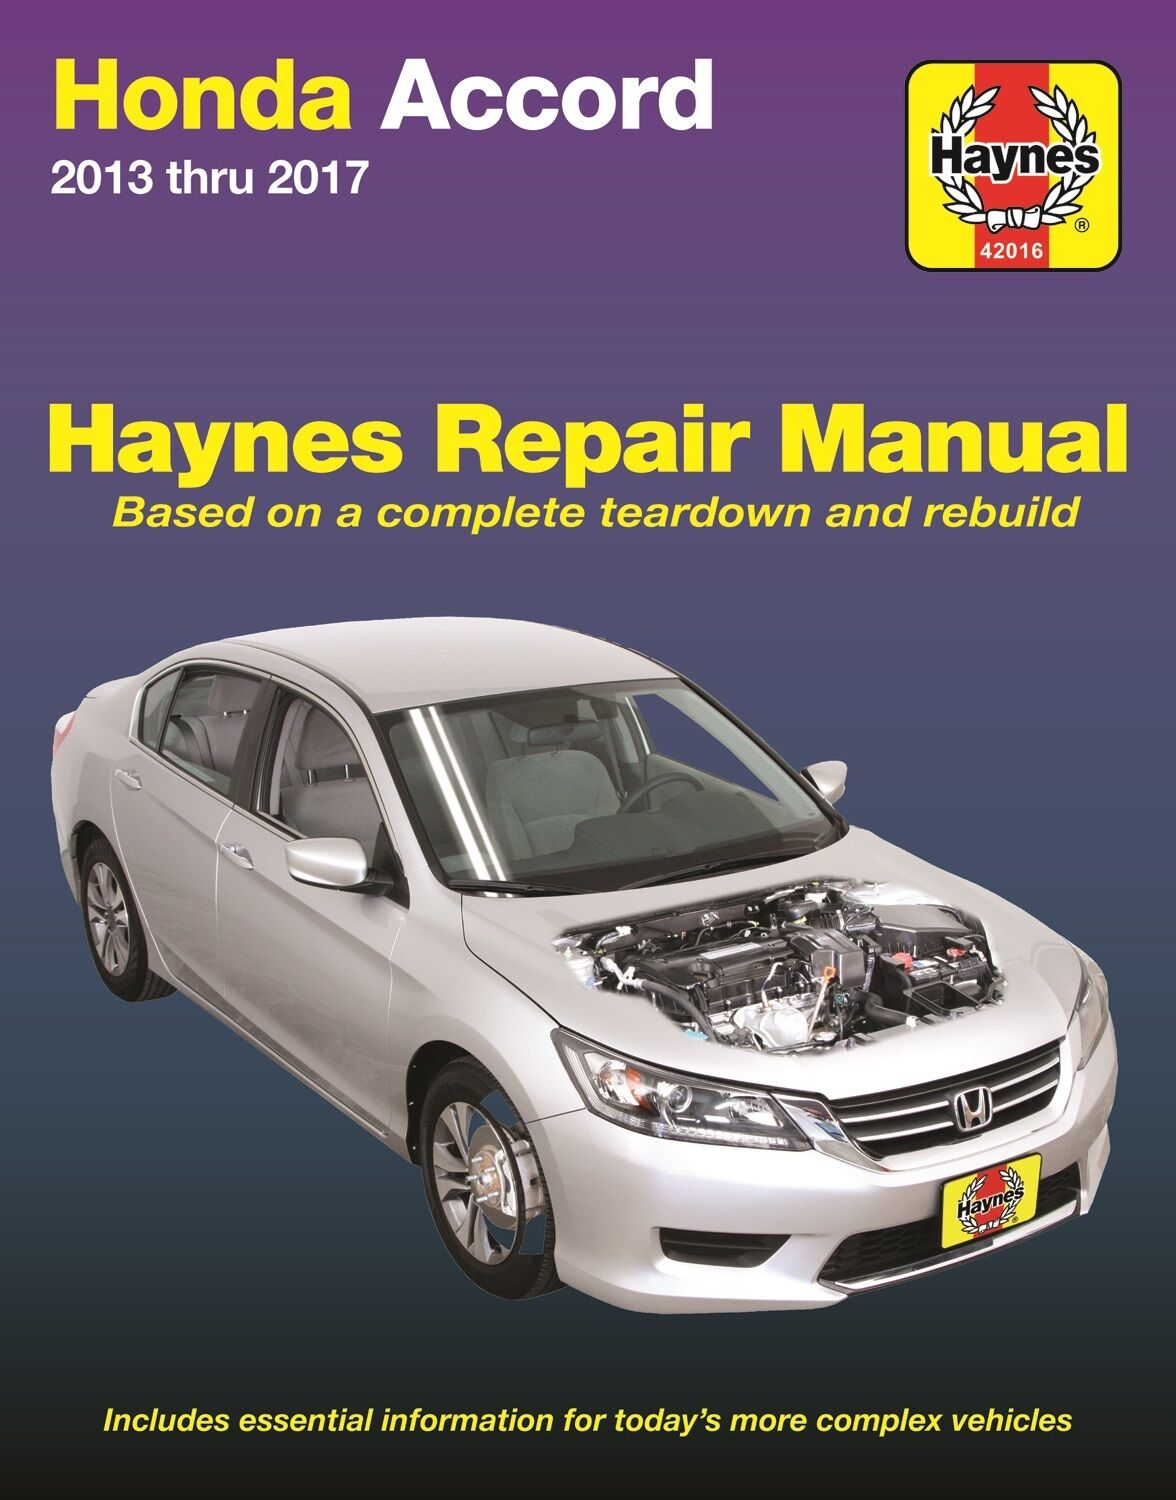 2013 2017 honda accord haynes repair service workshop manual rh picclick  com 2000 Honda Accord Repair Manual 2013 Honda Accord Owners Manual